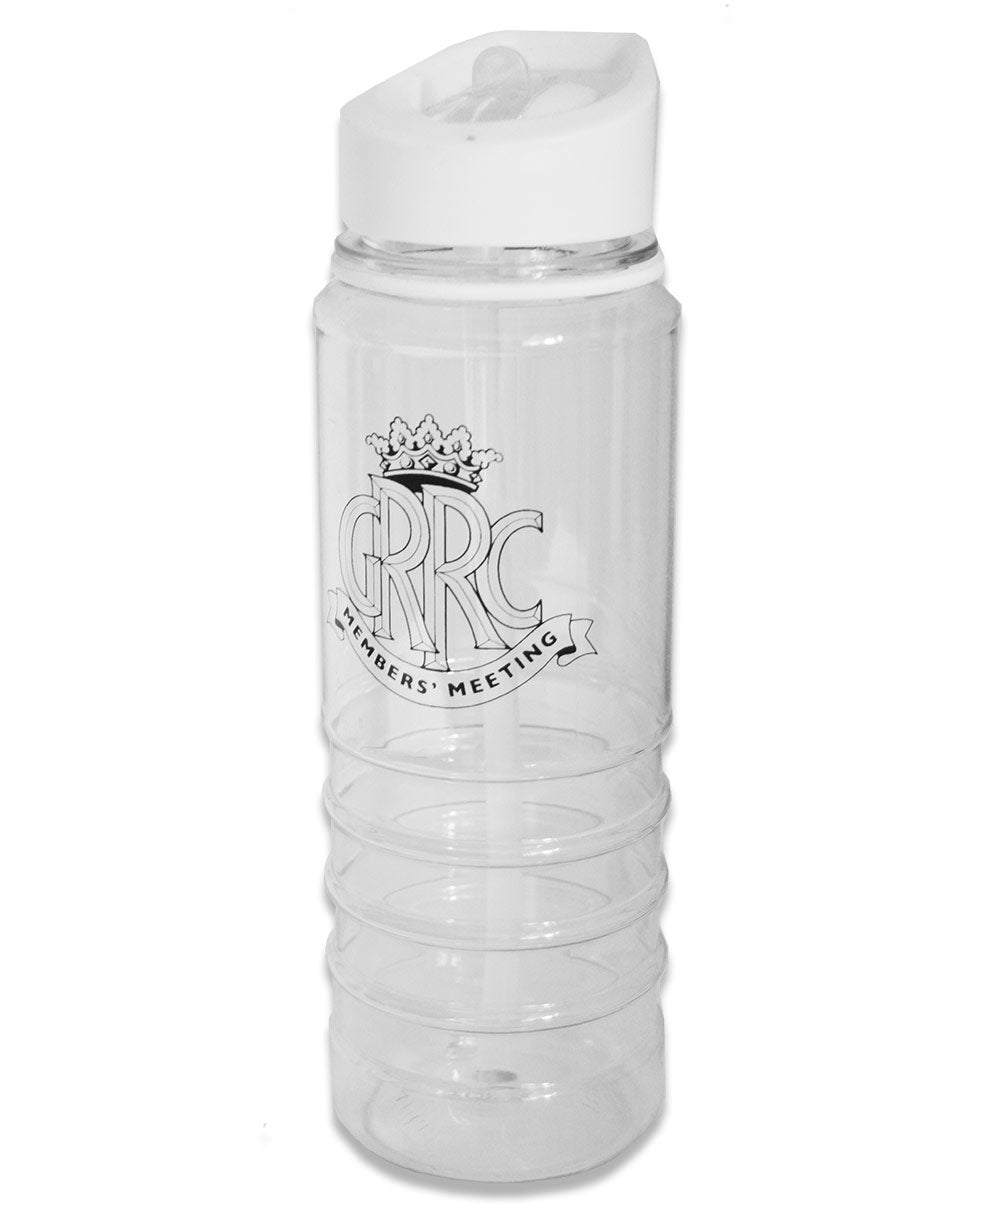 Goodwood Members' Meeting Water Bottle